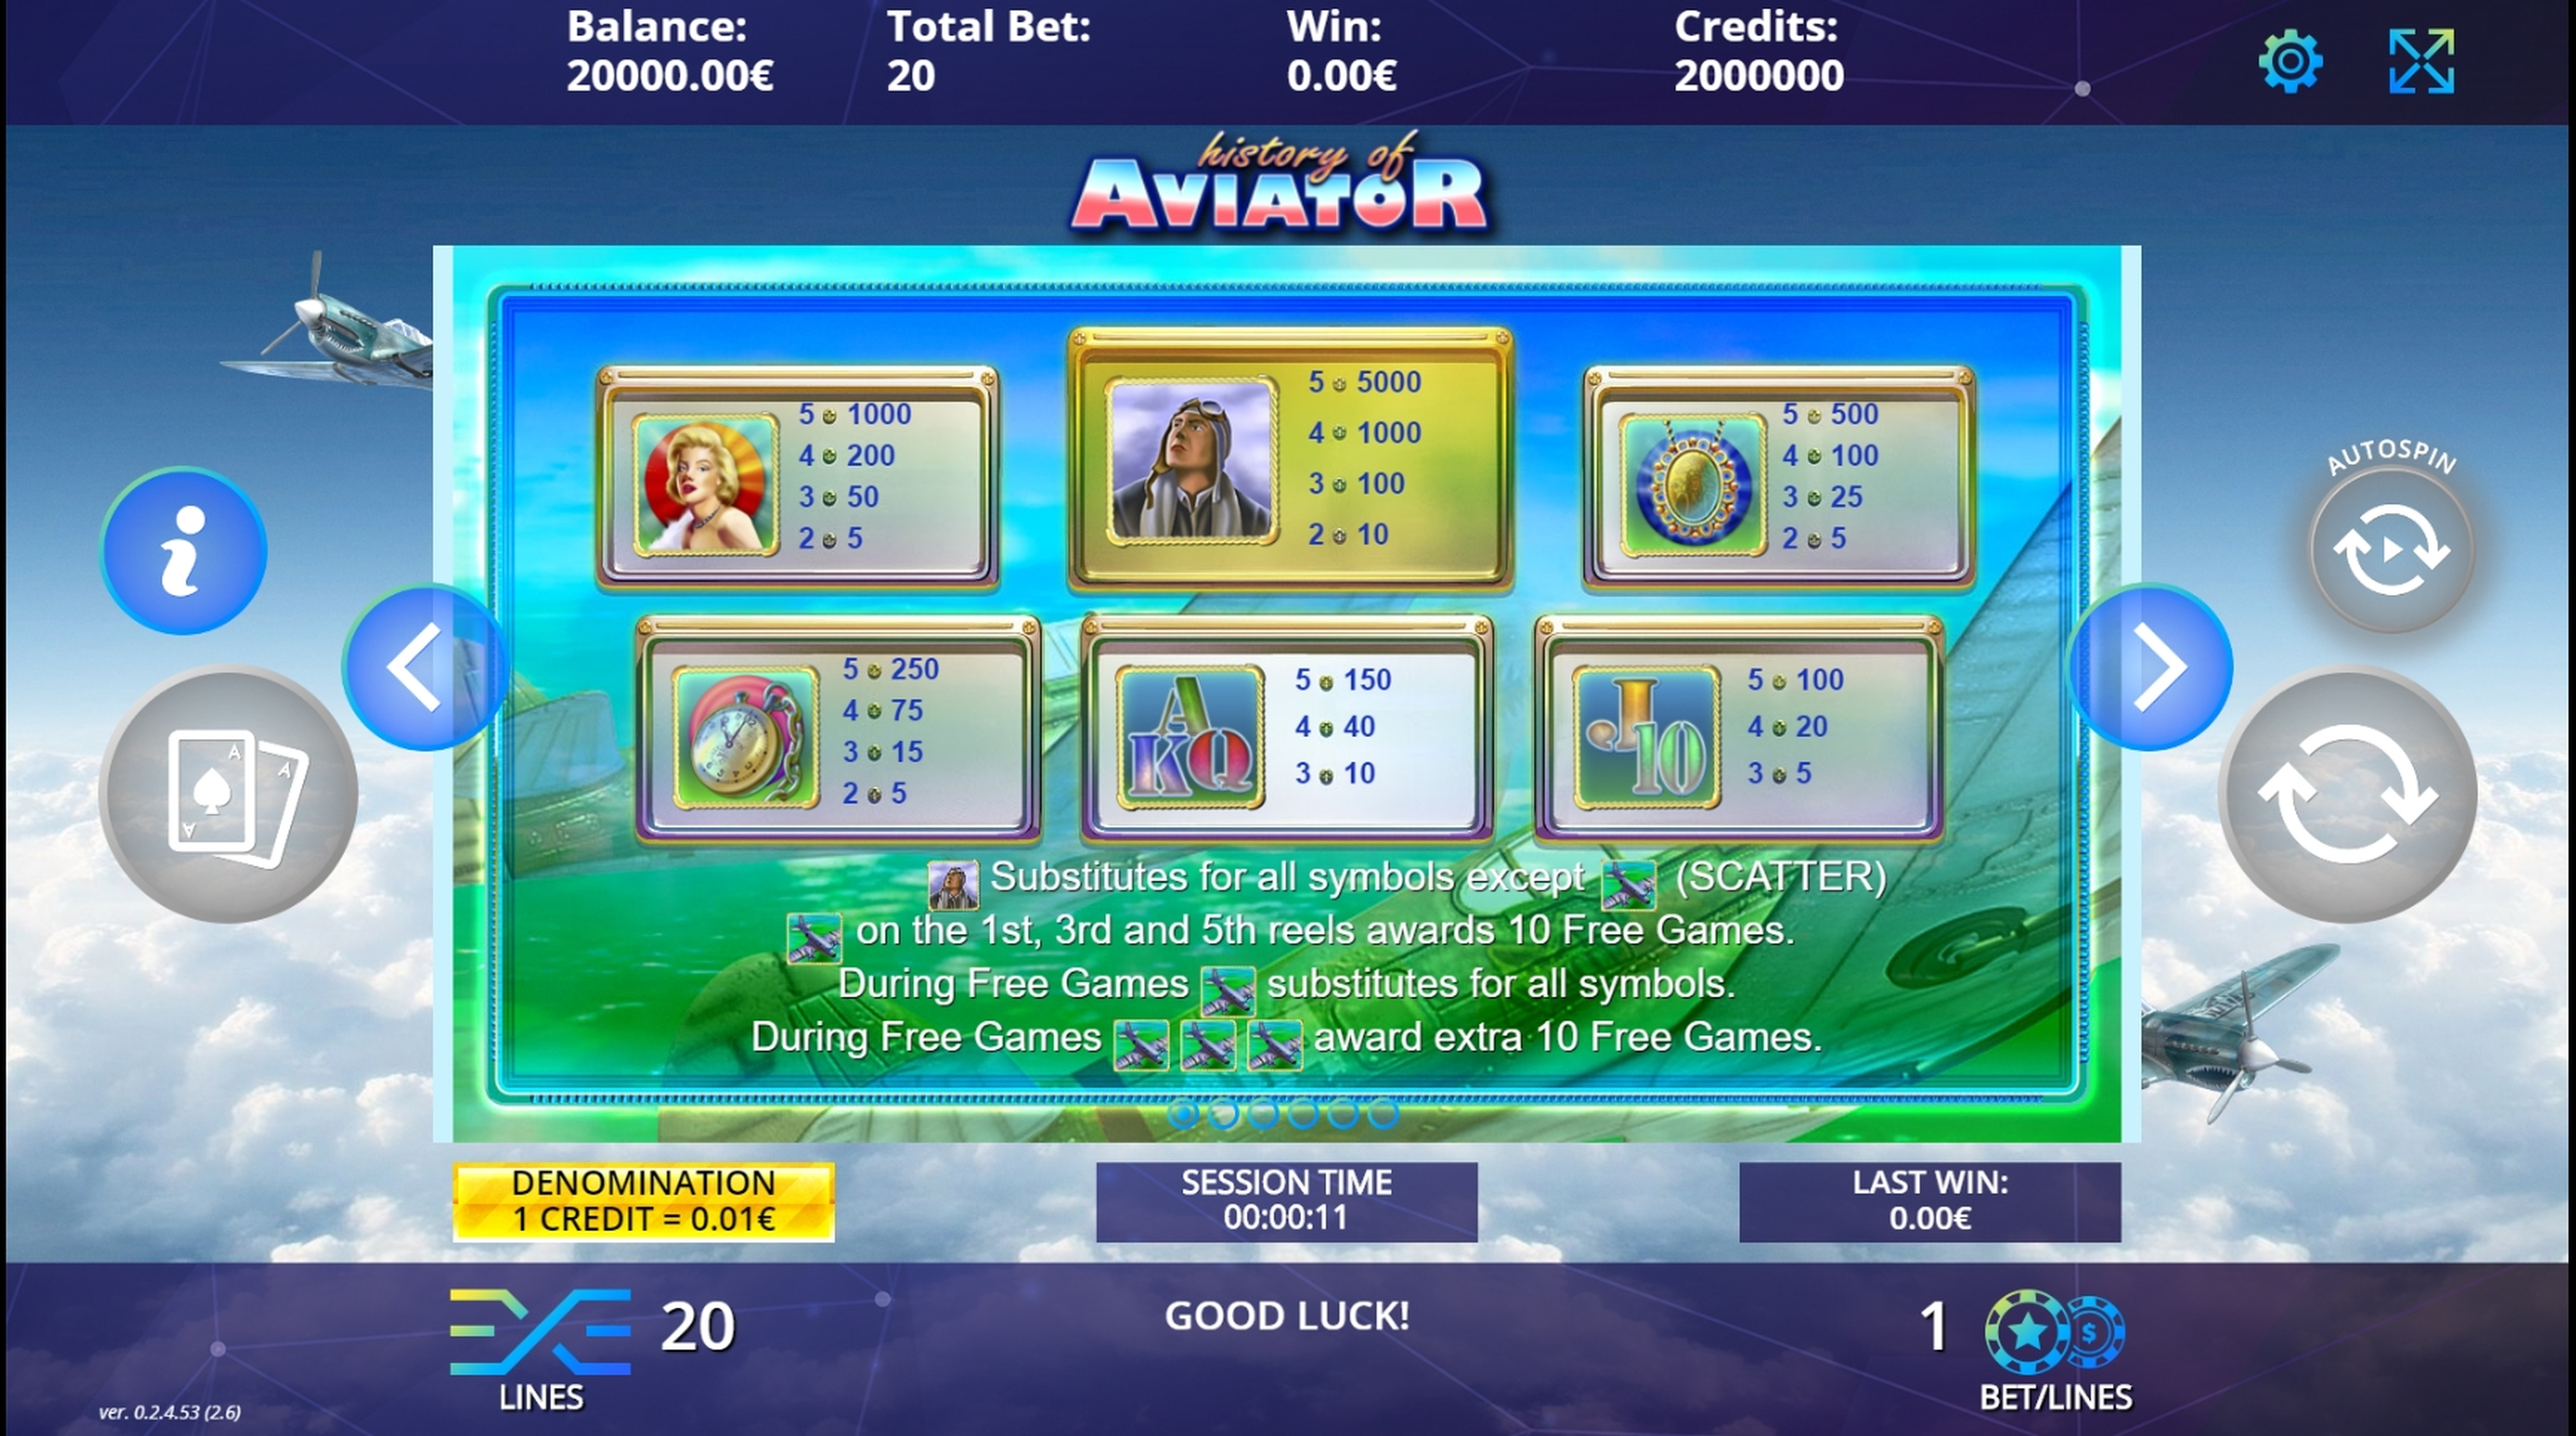 Info of History of Aviator Slot Game by DLV